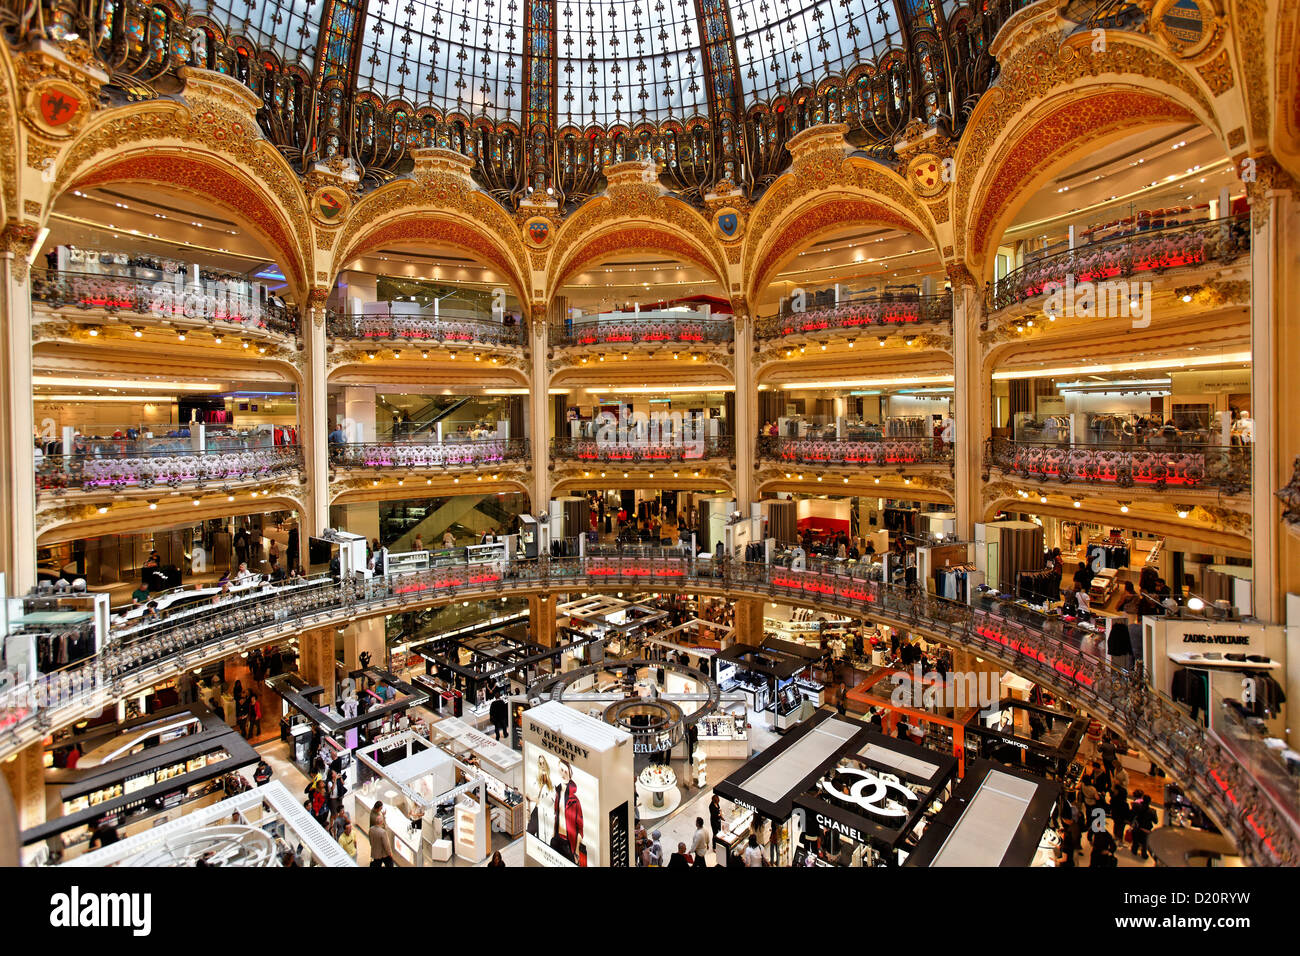 People at the department store Galeries Lafayette, Paris, France, Europe - Stock Image